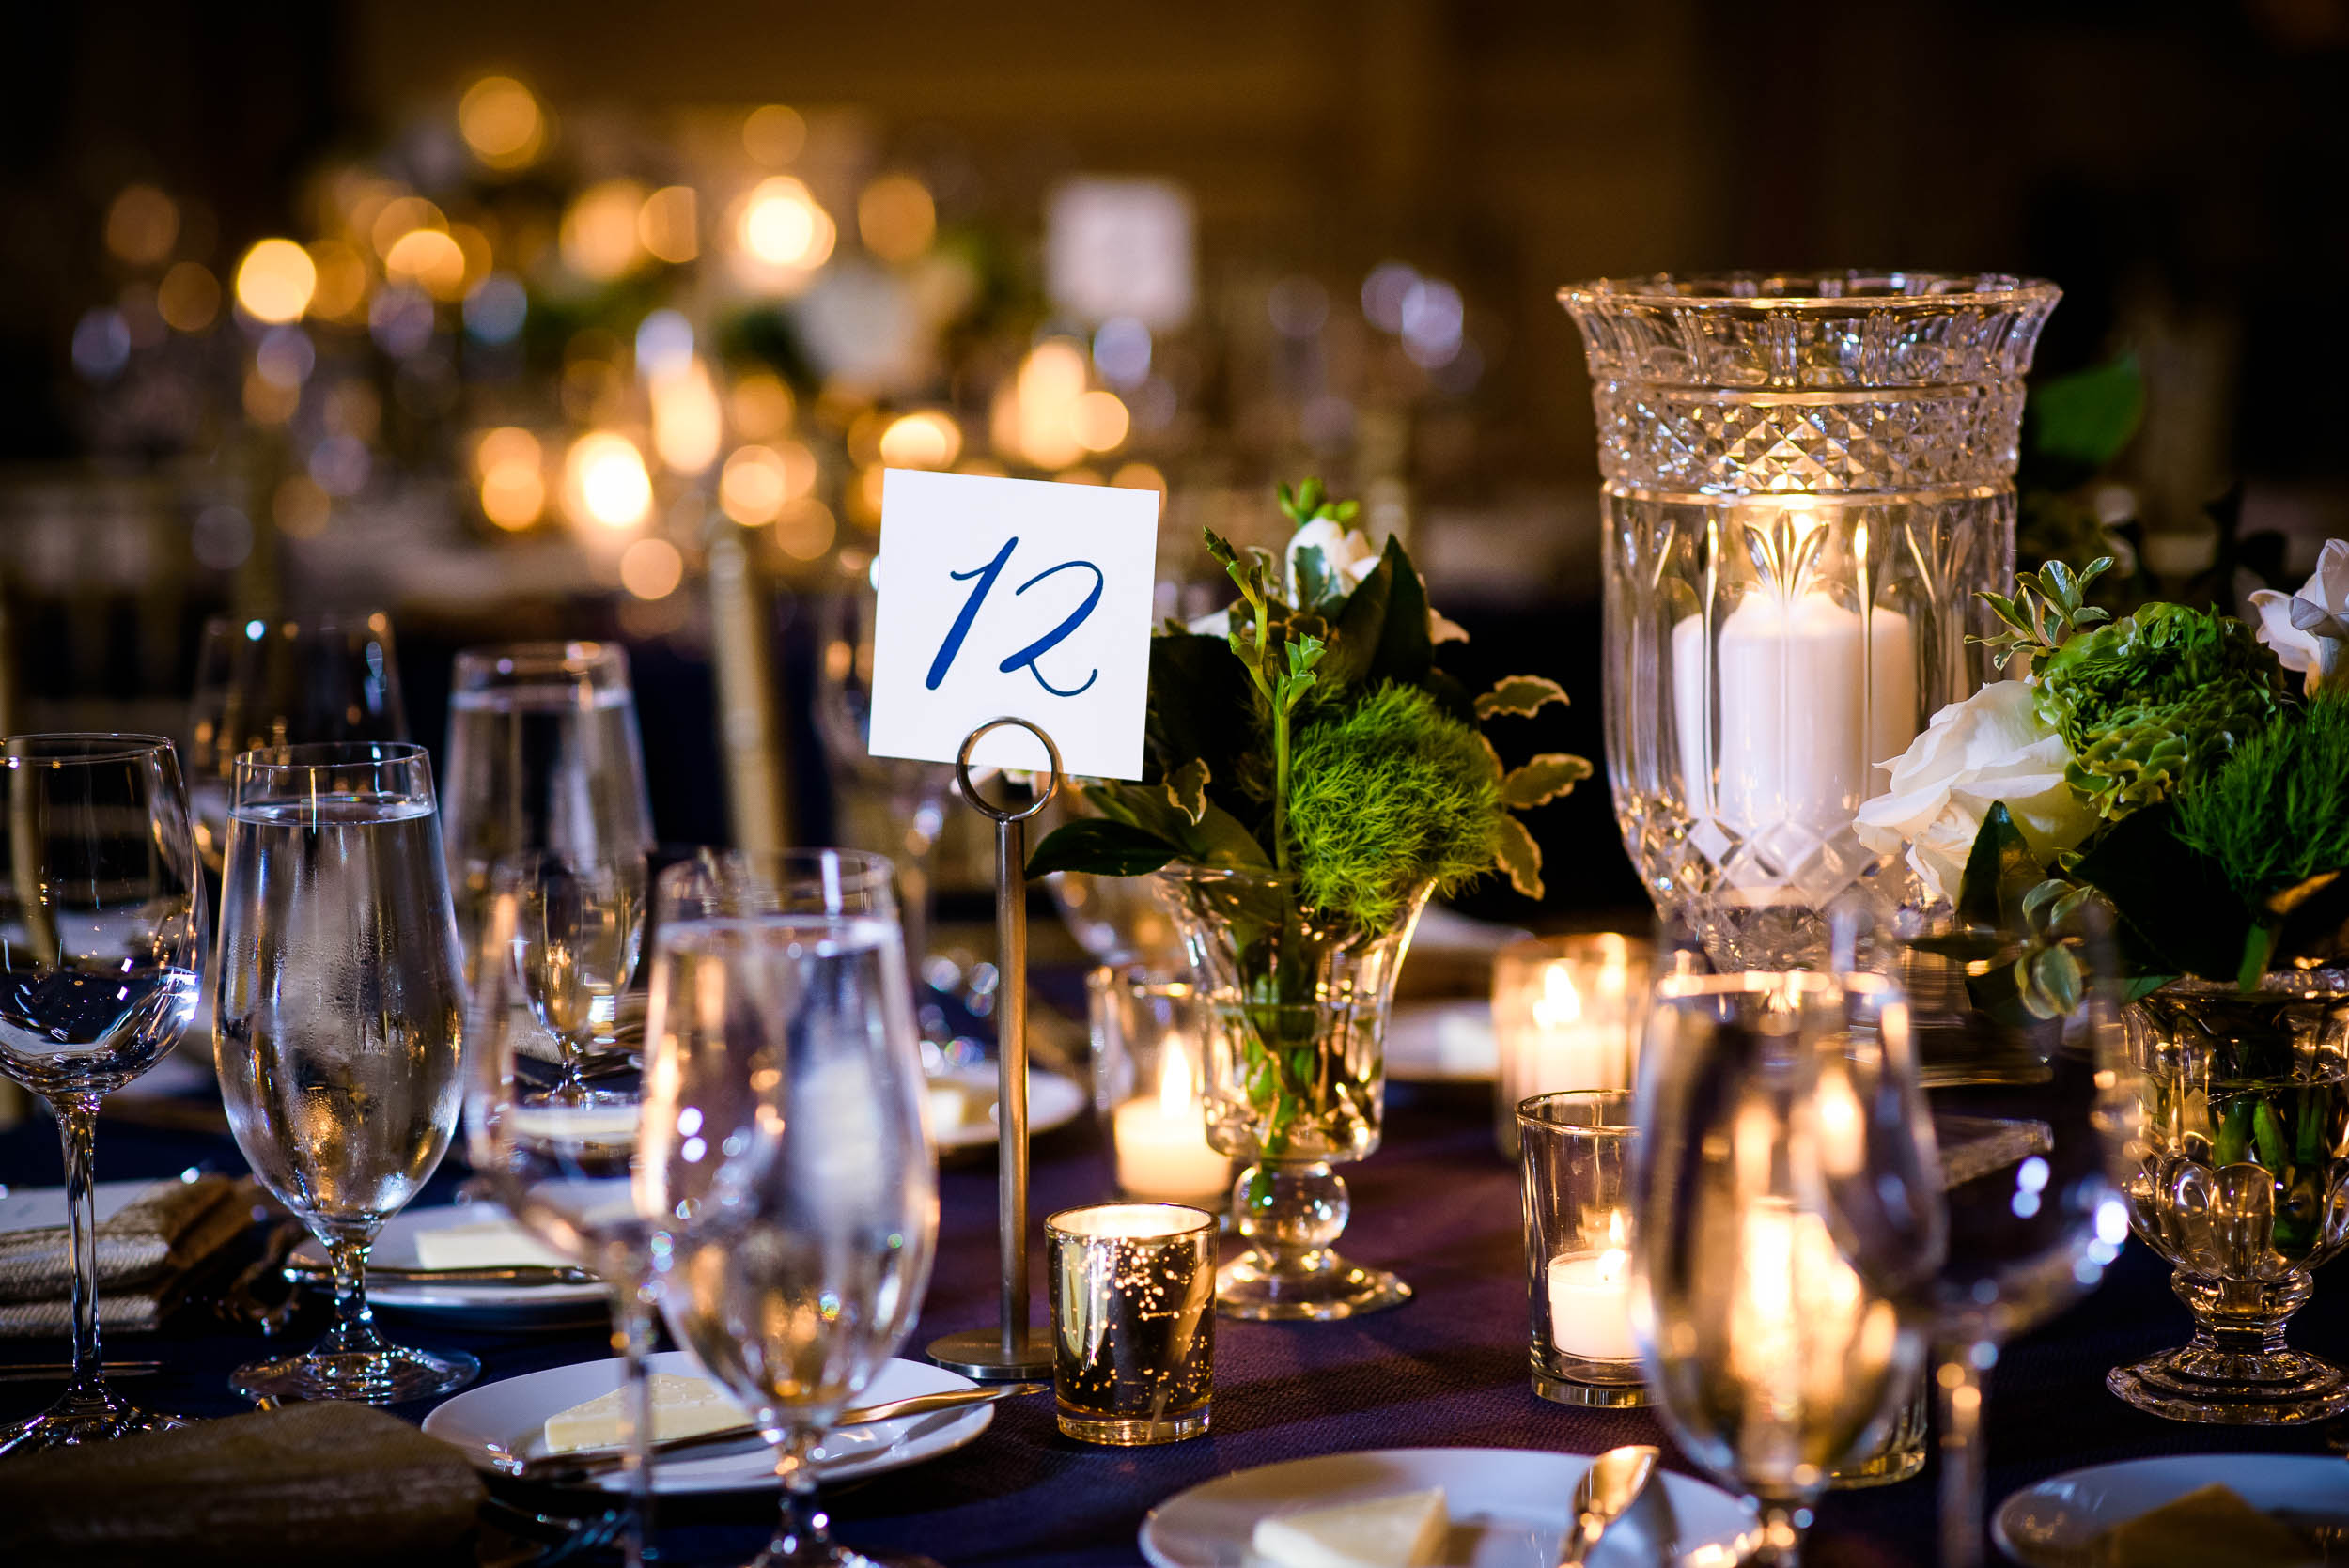 Wedding table decor for luxurious fall wedding at the Chicago Symphony Center captured by J. Brown Photography. See more wedding ideas at jbrownphotography.com!